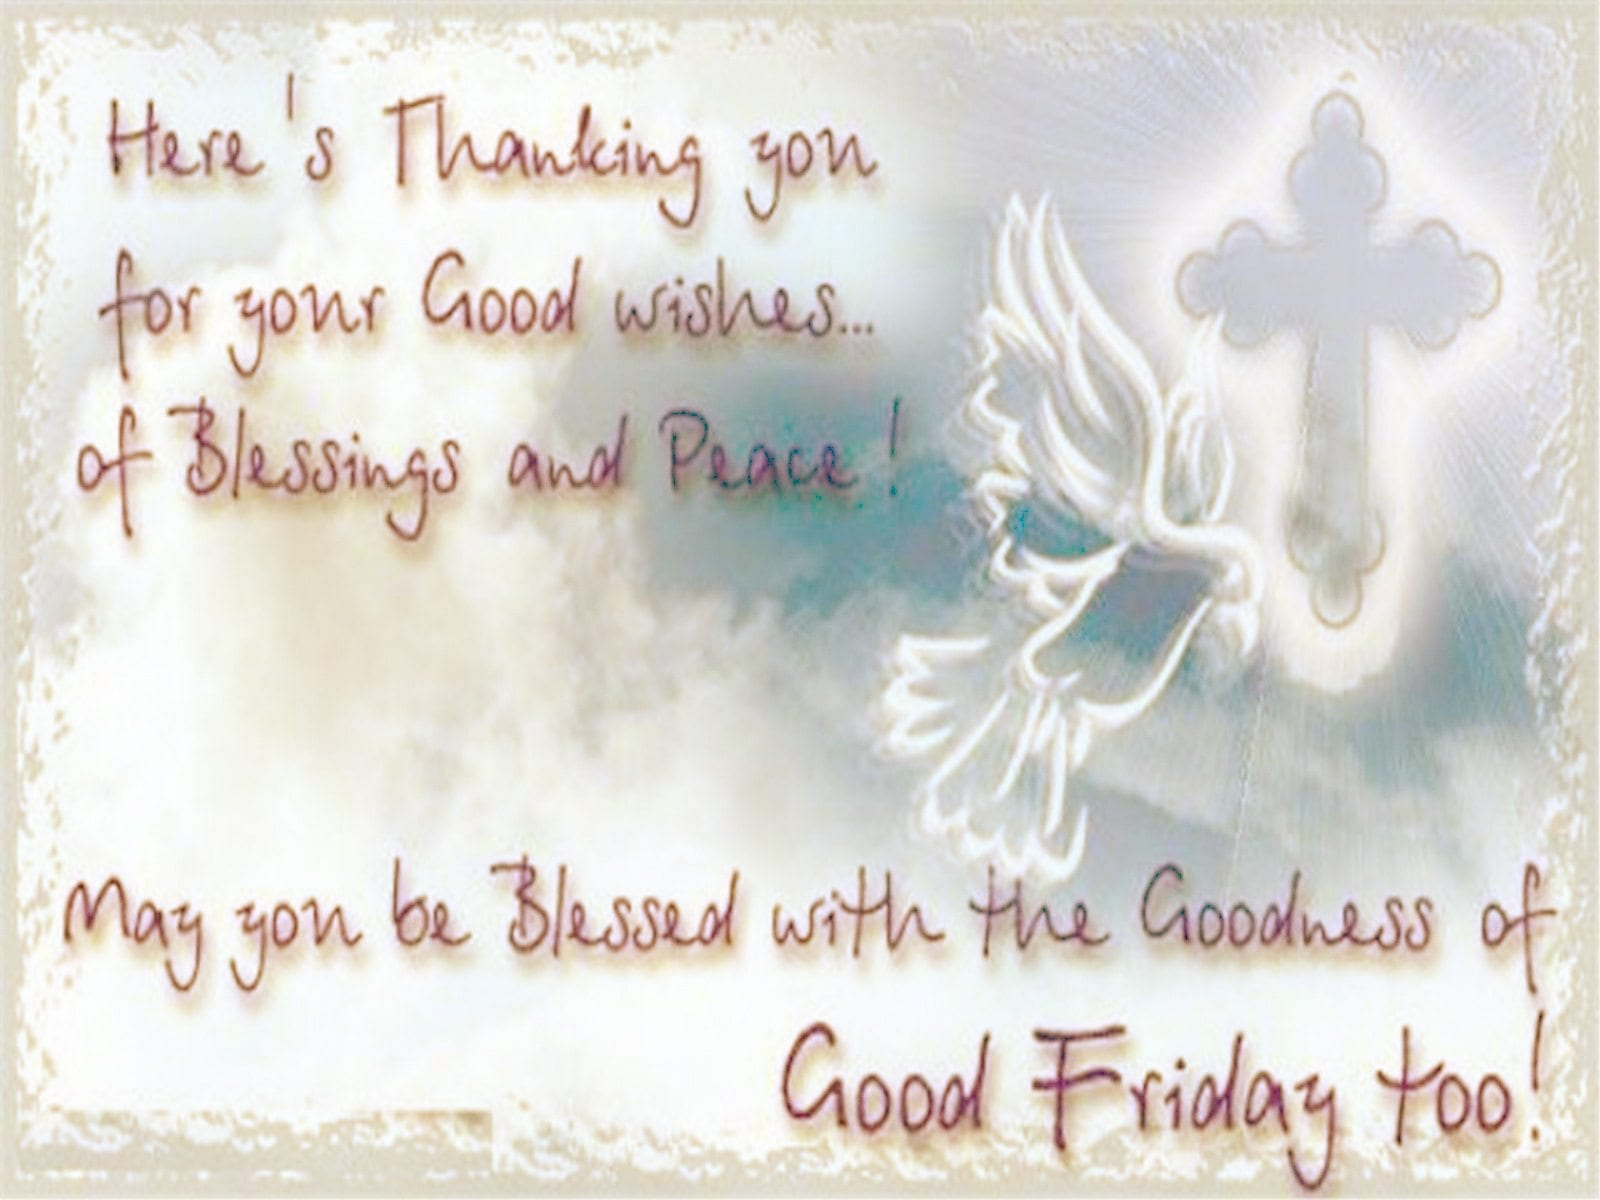 High-Resolution-image-of-Good-Friday-with-text-message